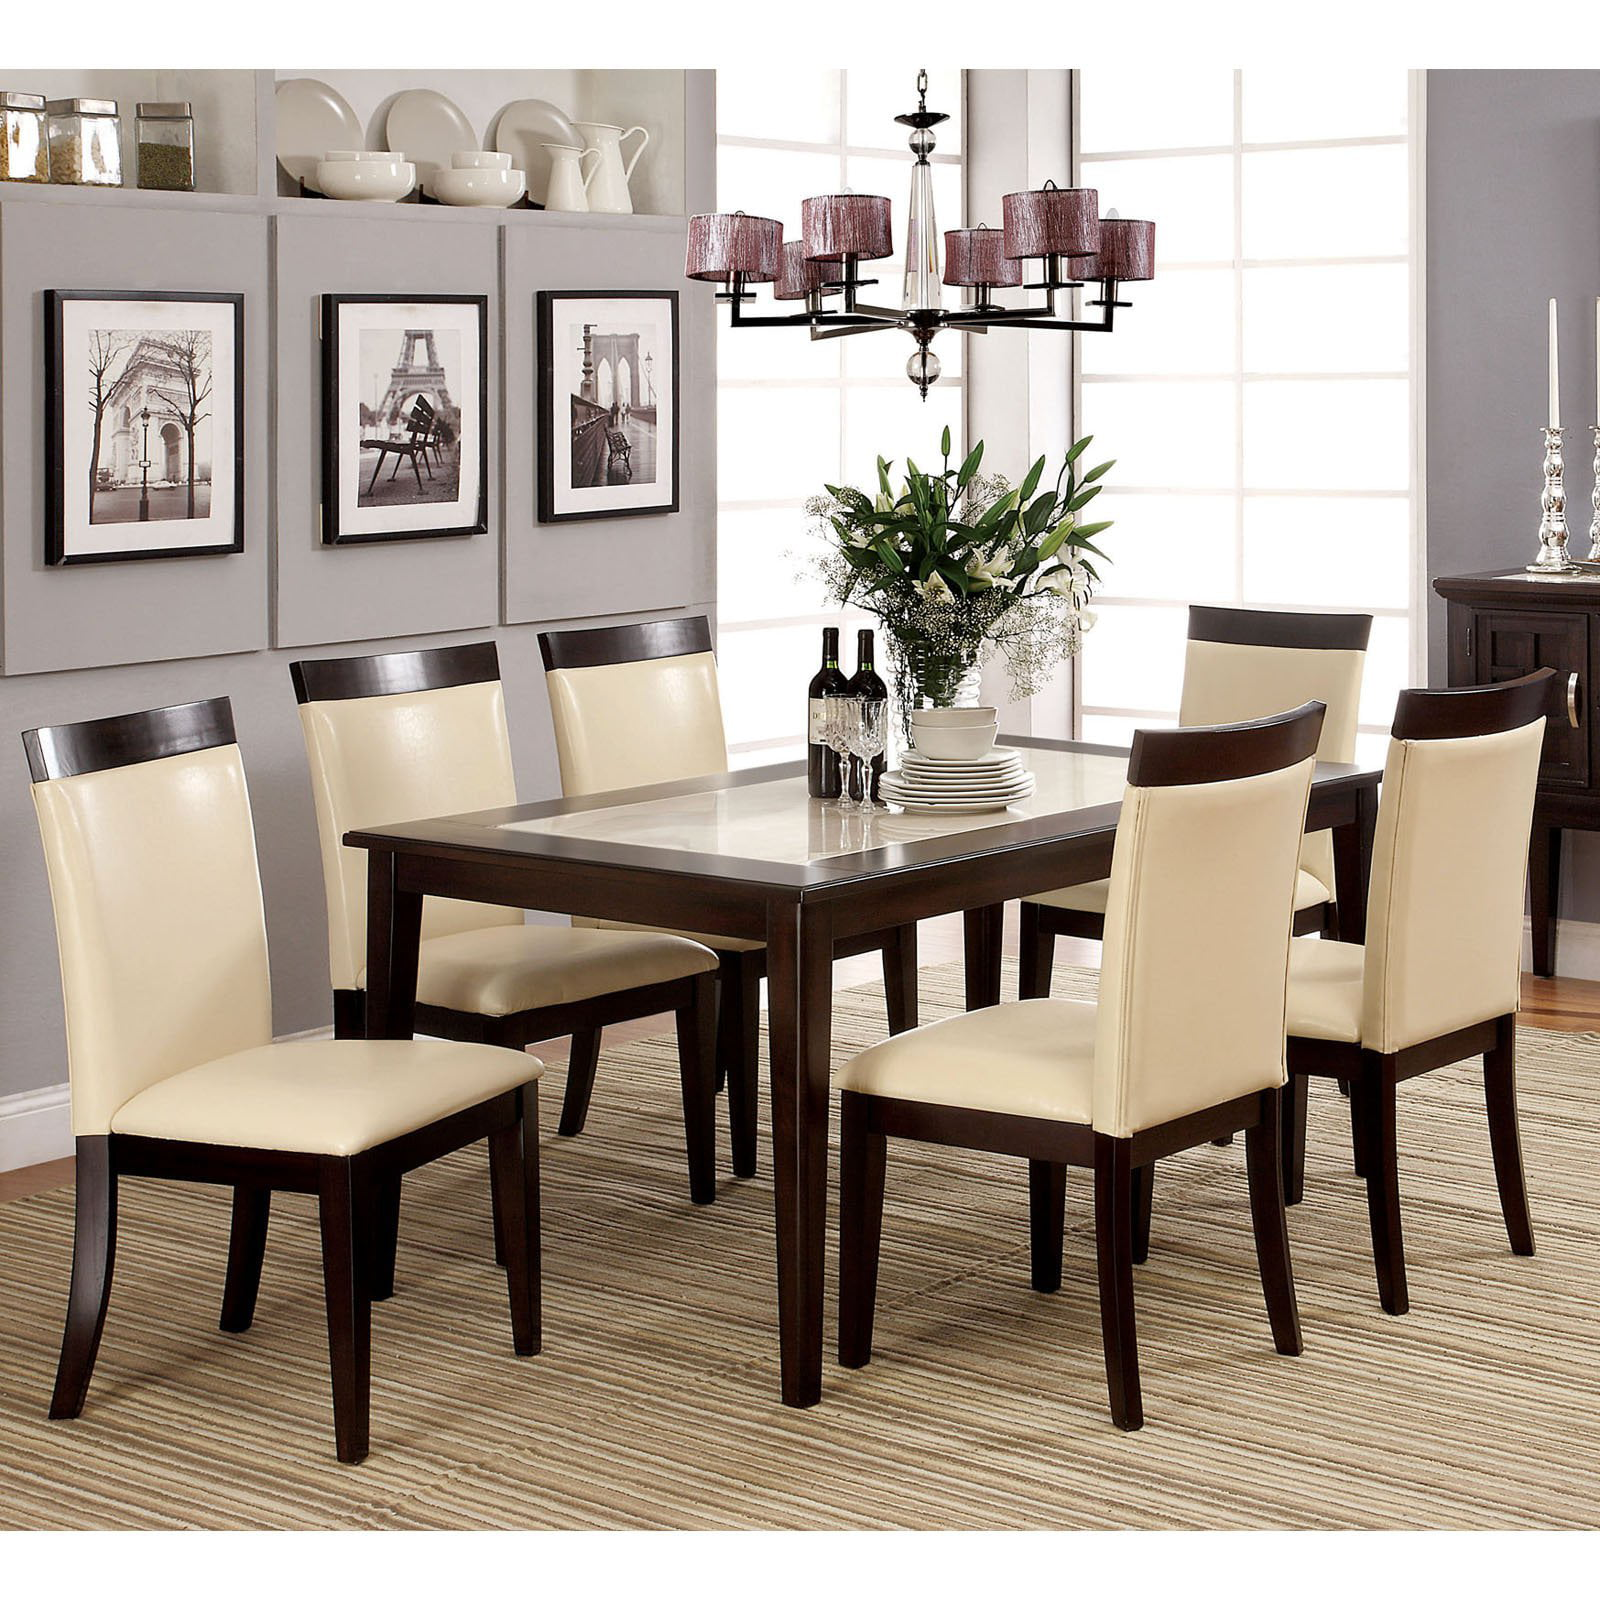 Mainstays 5 Piece Faux Marble Top Dining Set   Walmart.com Part 33